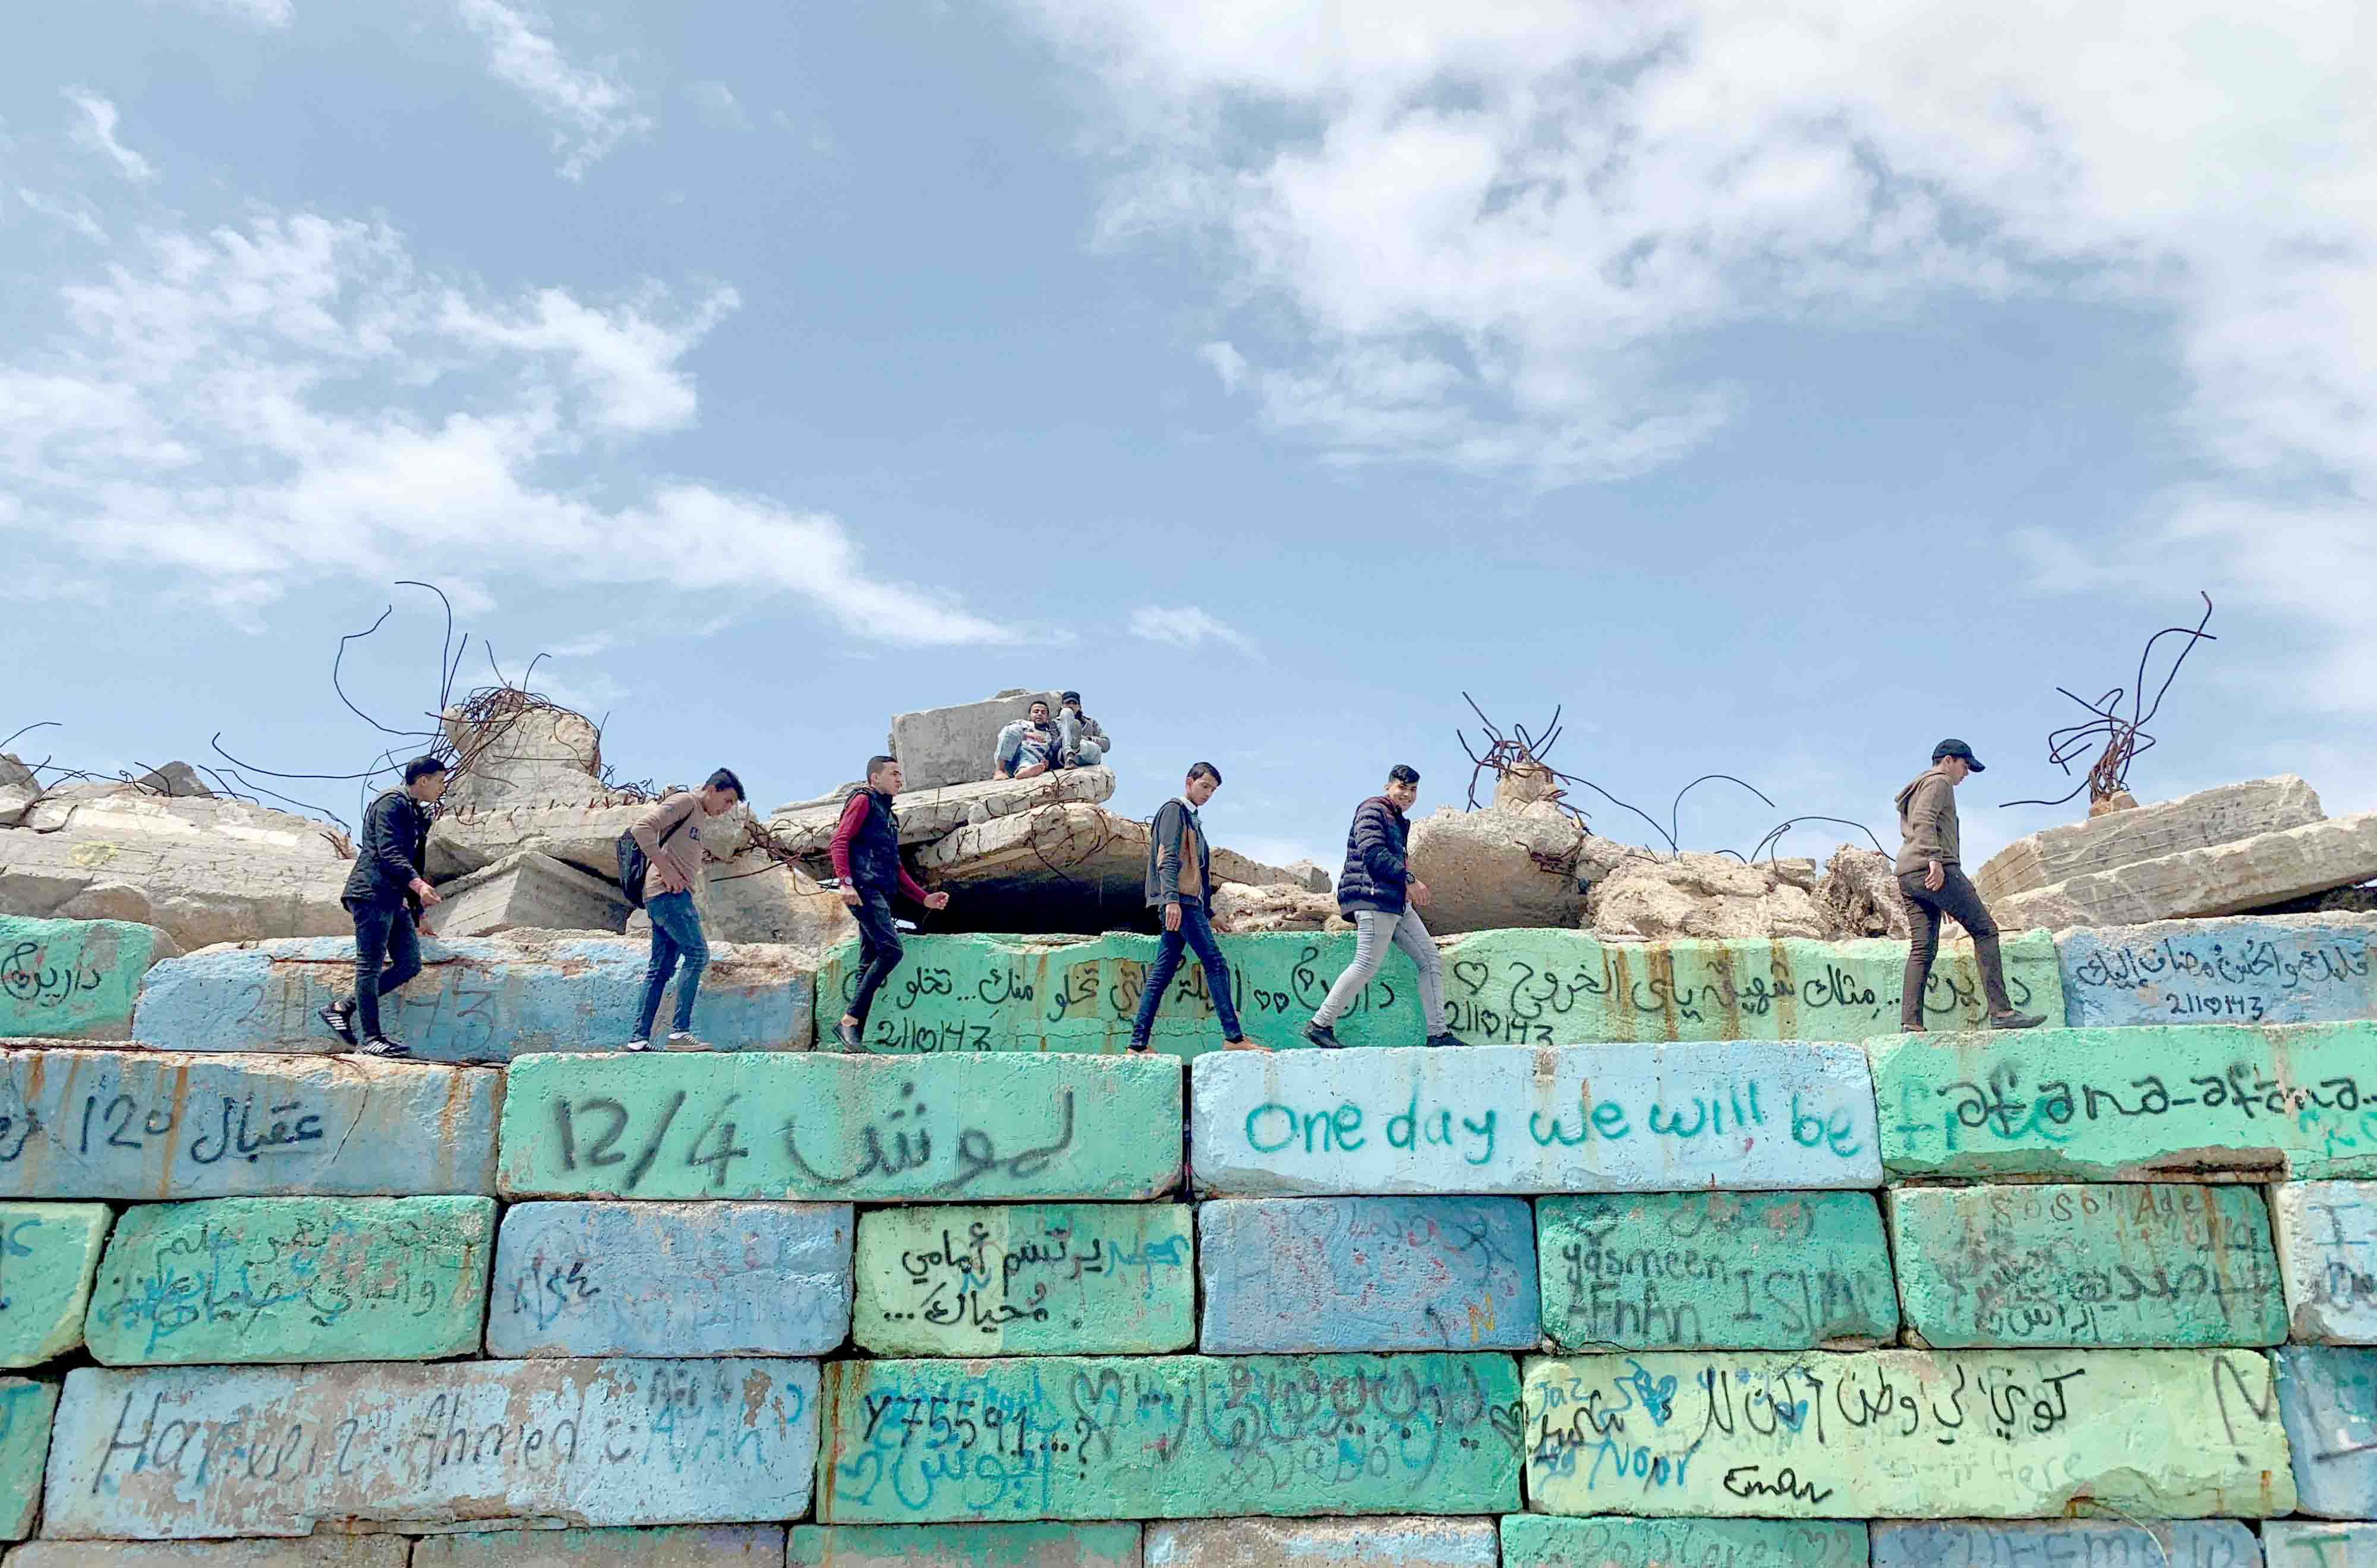 Palestinians walk on concrete blocks at the seaport of Gaza City, April 2. (Reuters)